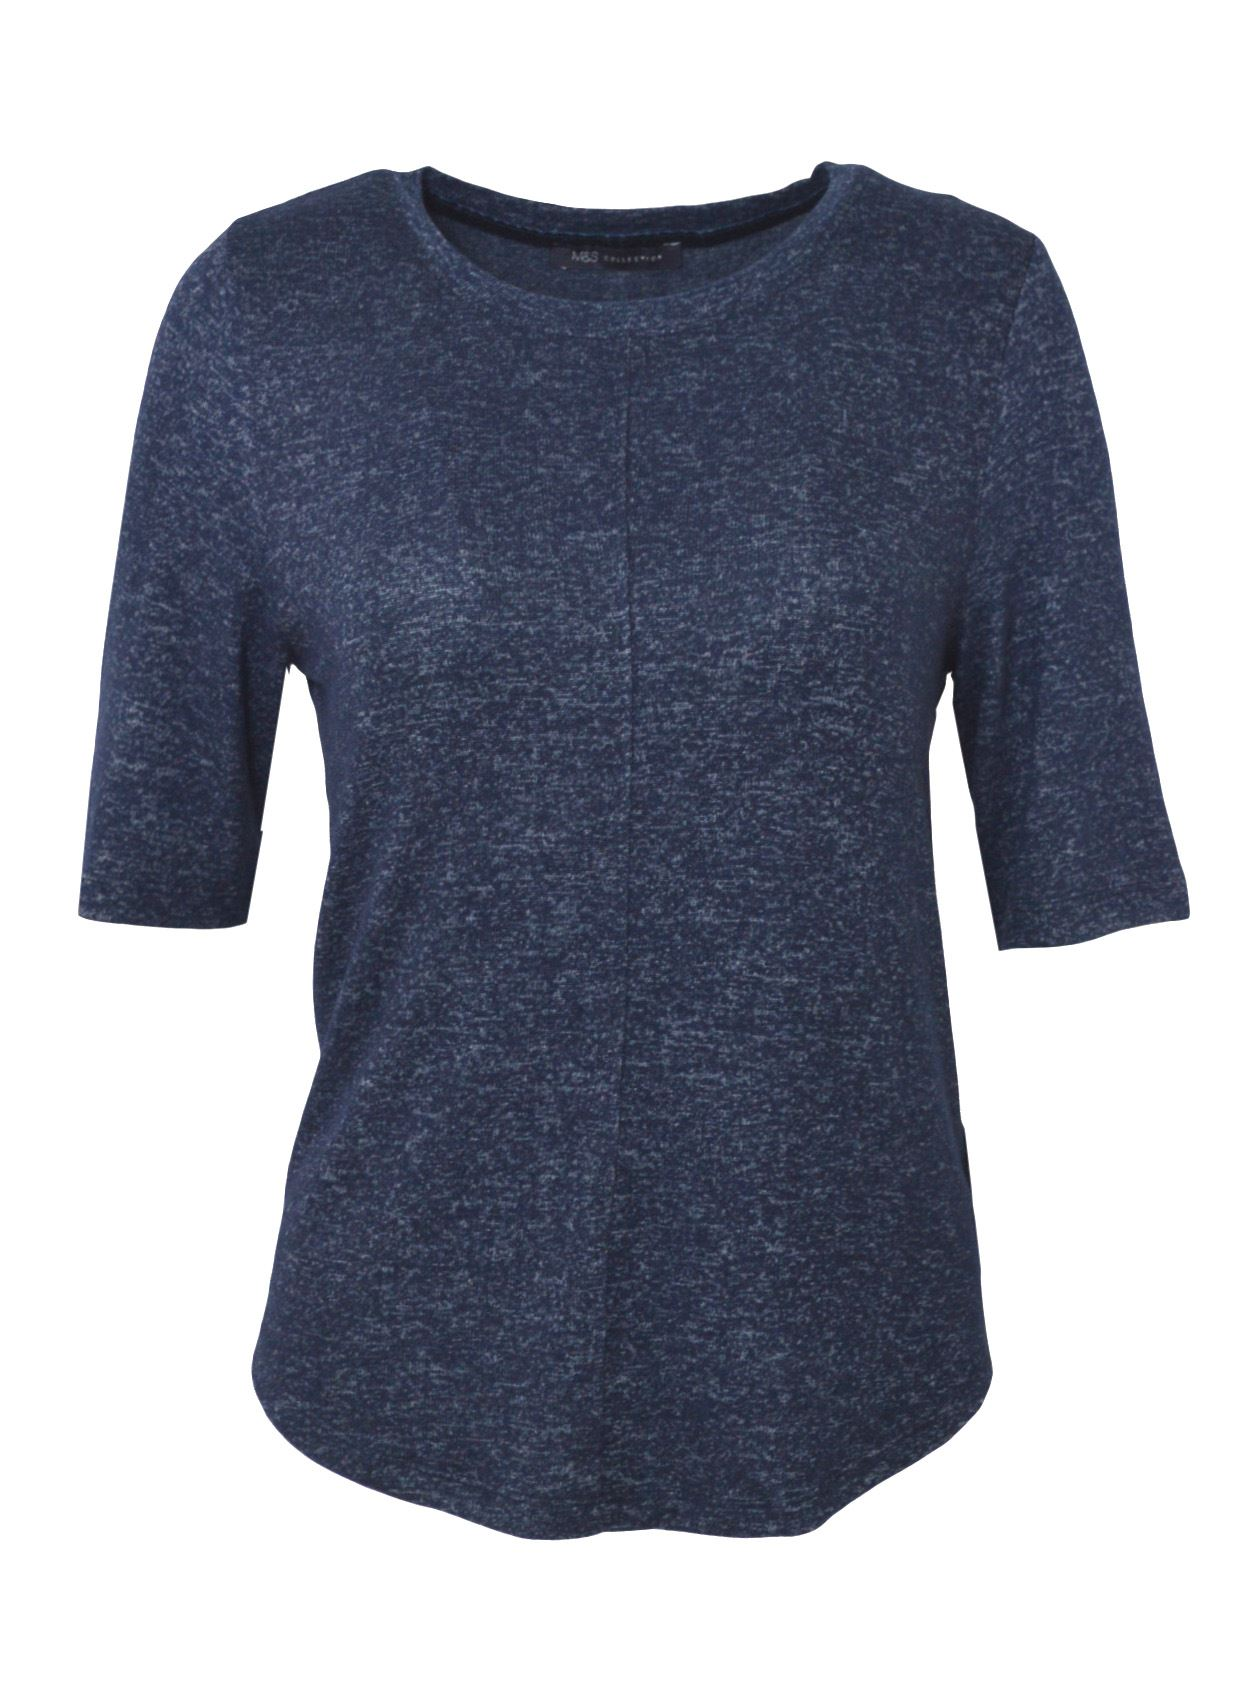 MARKS-AND-SPENCER-M-amp-S-Soft-Knit-Scoop-Neck-Top-Curved-Hem-Pale-Pink-Dark-Navy thumbnail 6